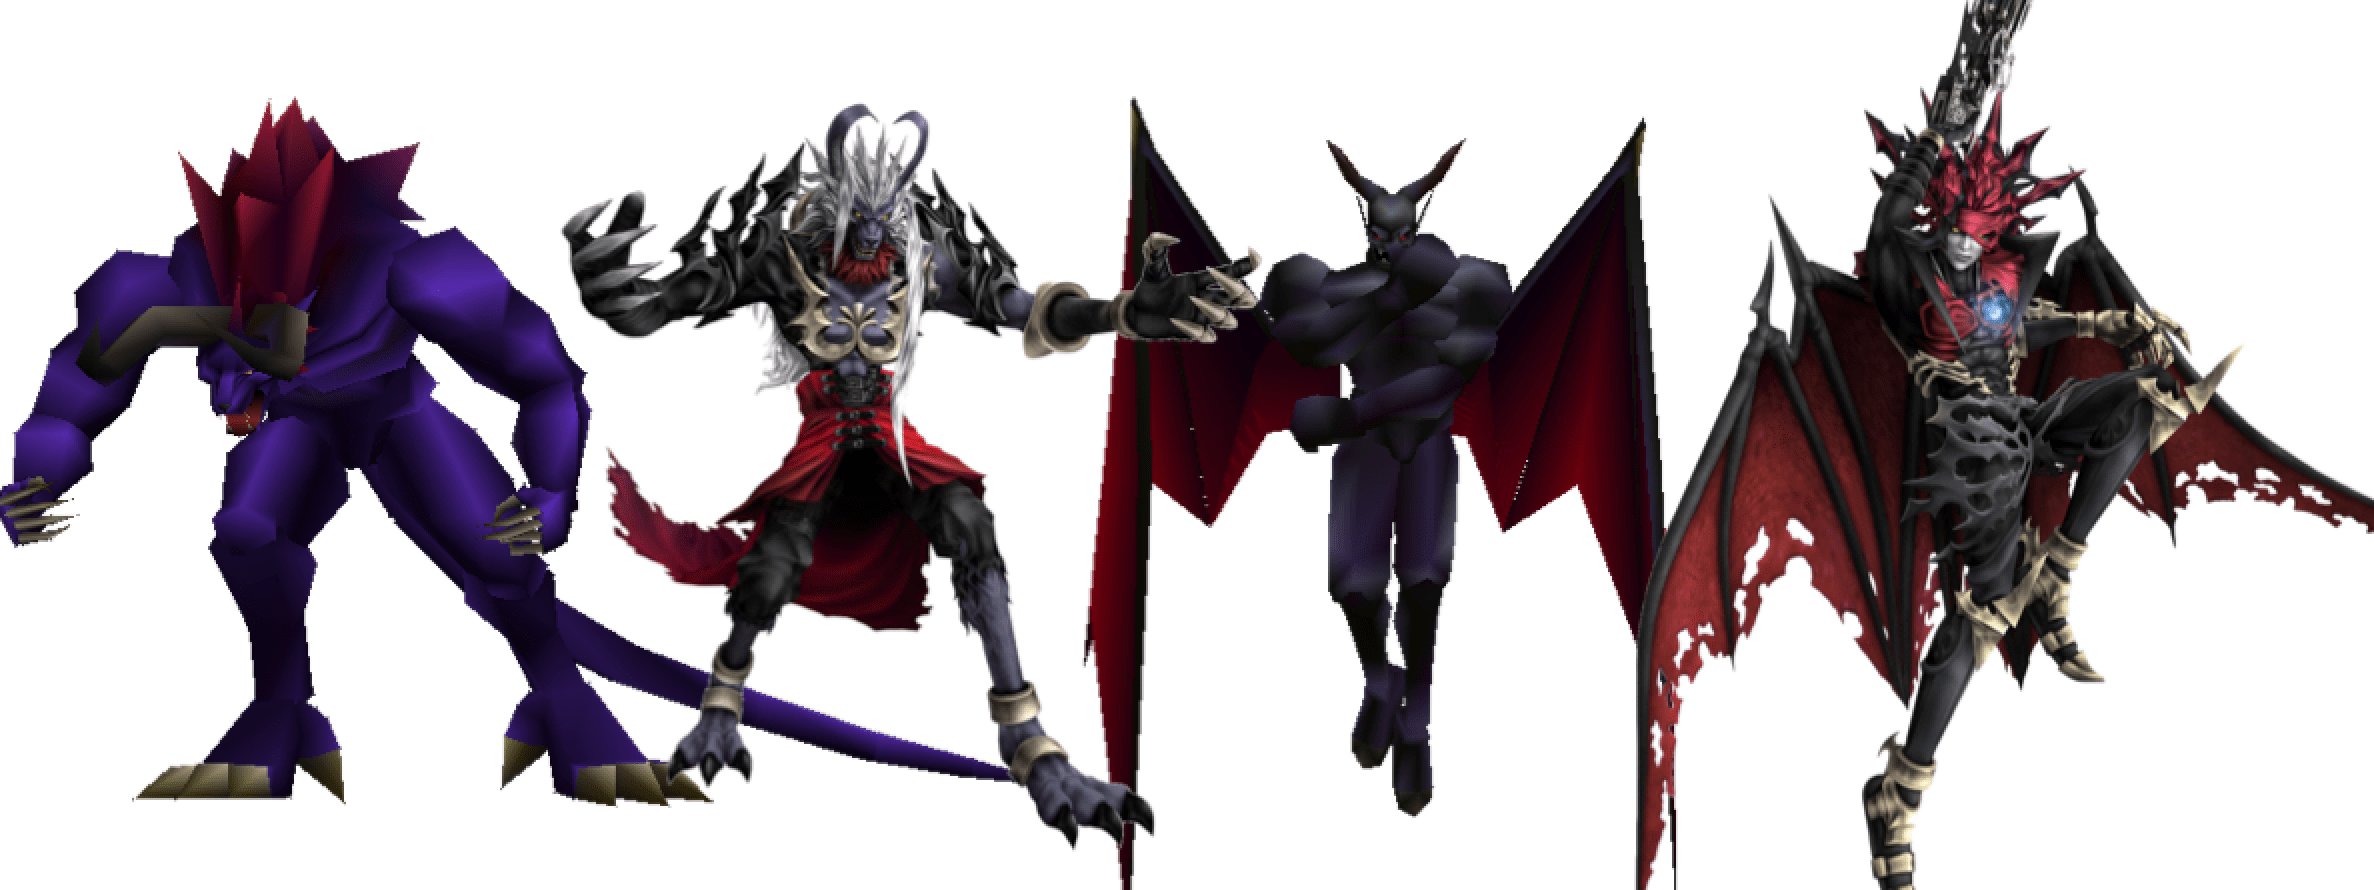 Ancient Awesomeness Dirge Of Cerberus Final Fantasy VII